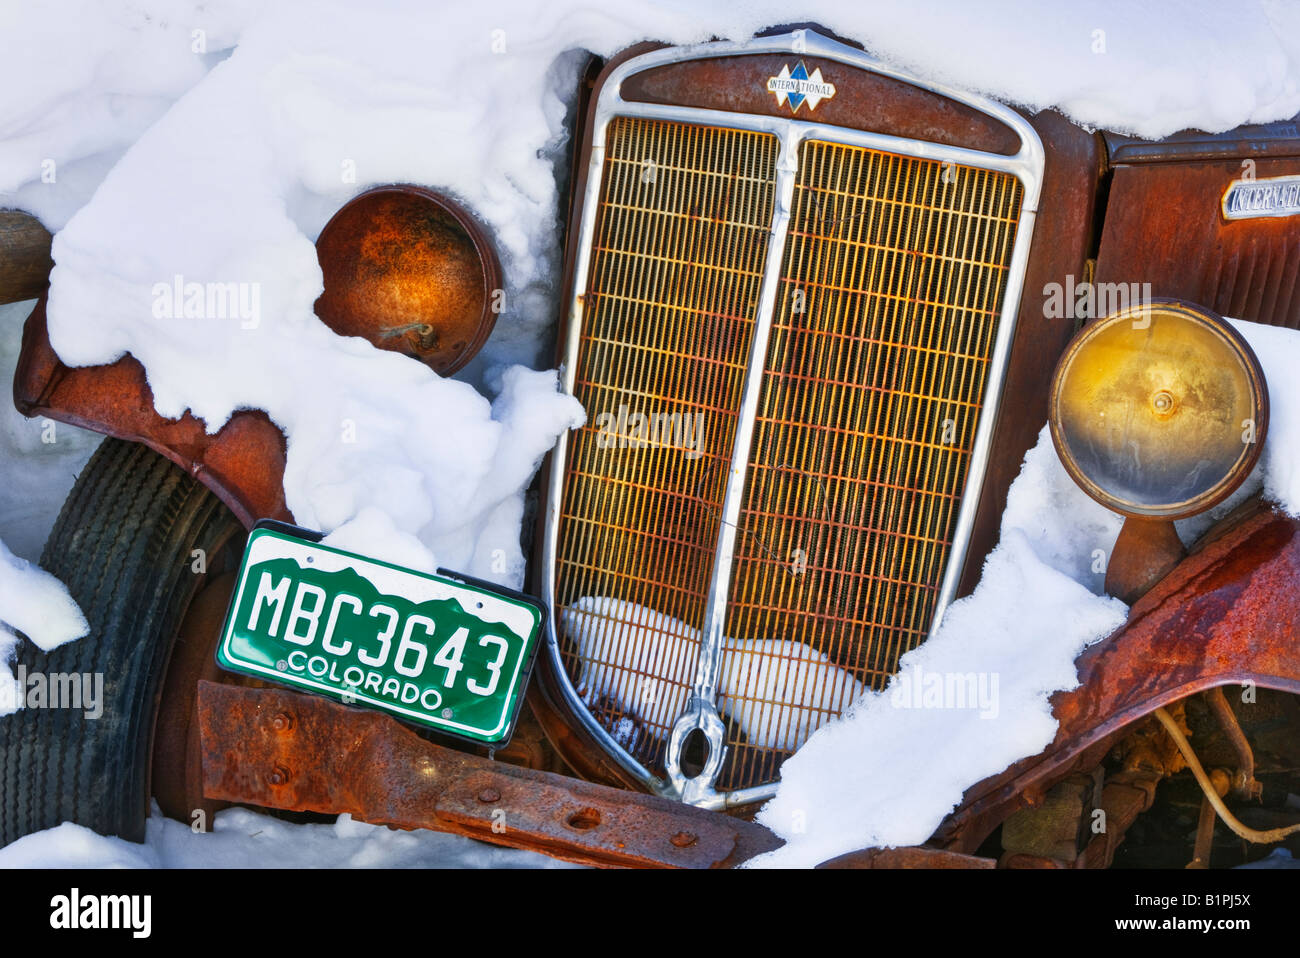 A rusty old car covered in snow near Steamboat Springs, Colorado, USA. - Stock Image